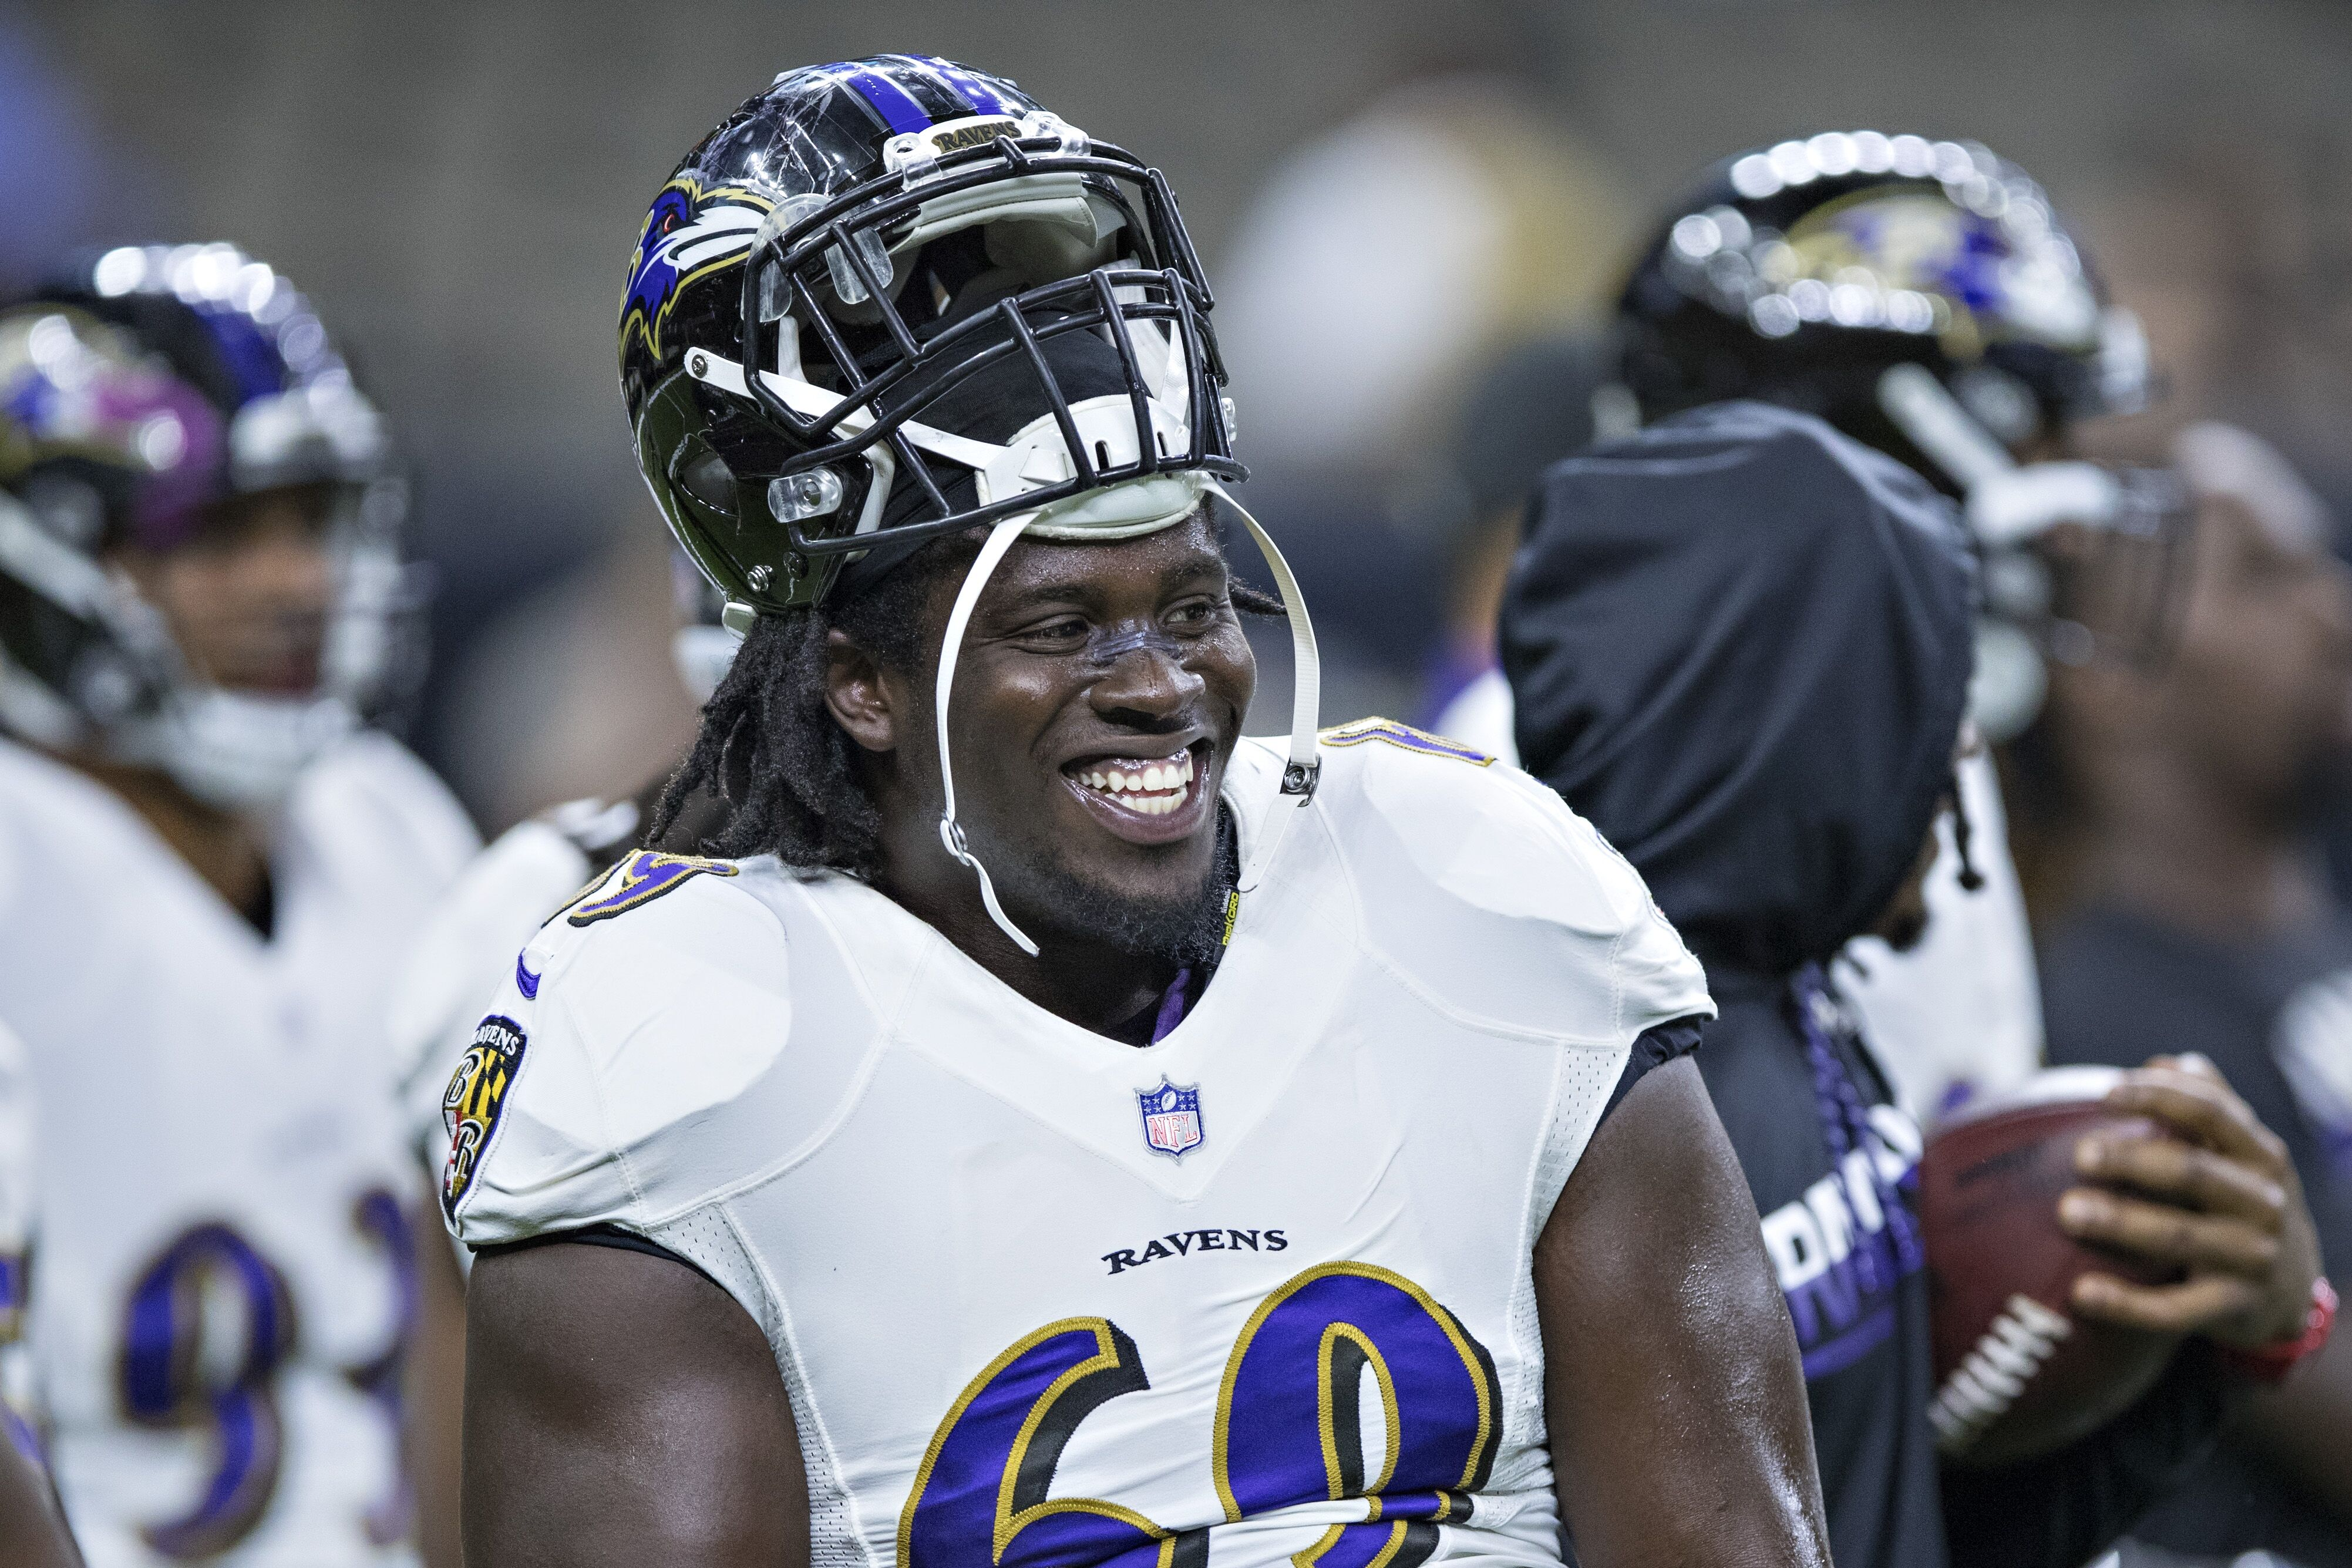 Willie Henry could be ready for a breakout year with the Ravens